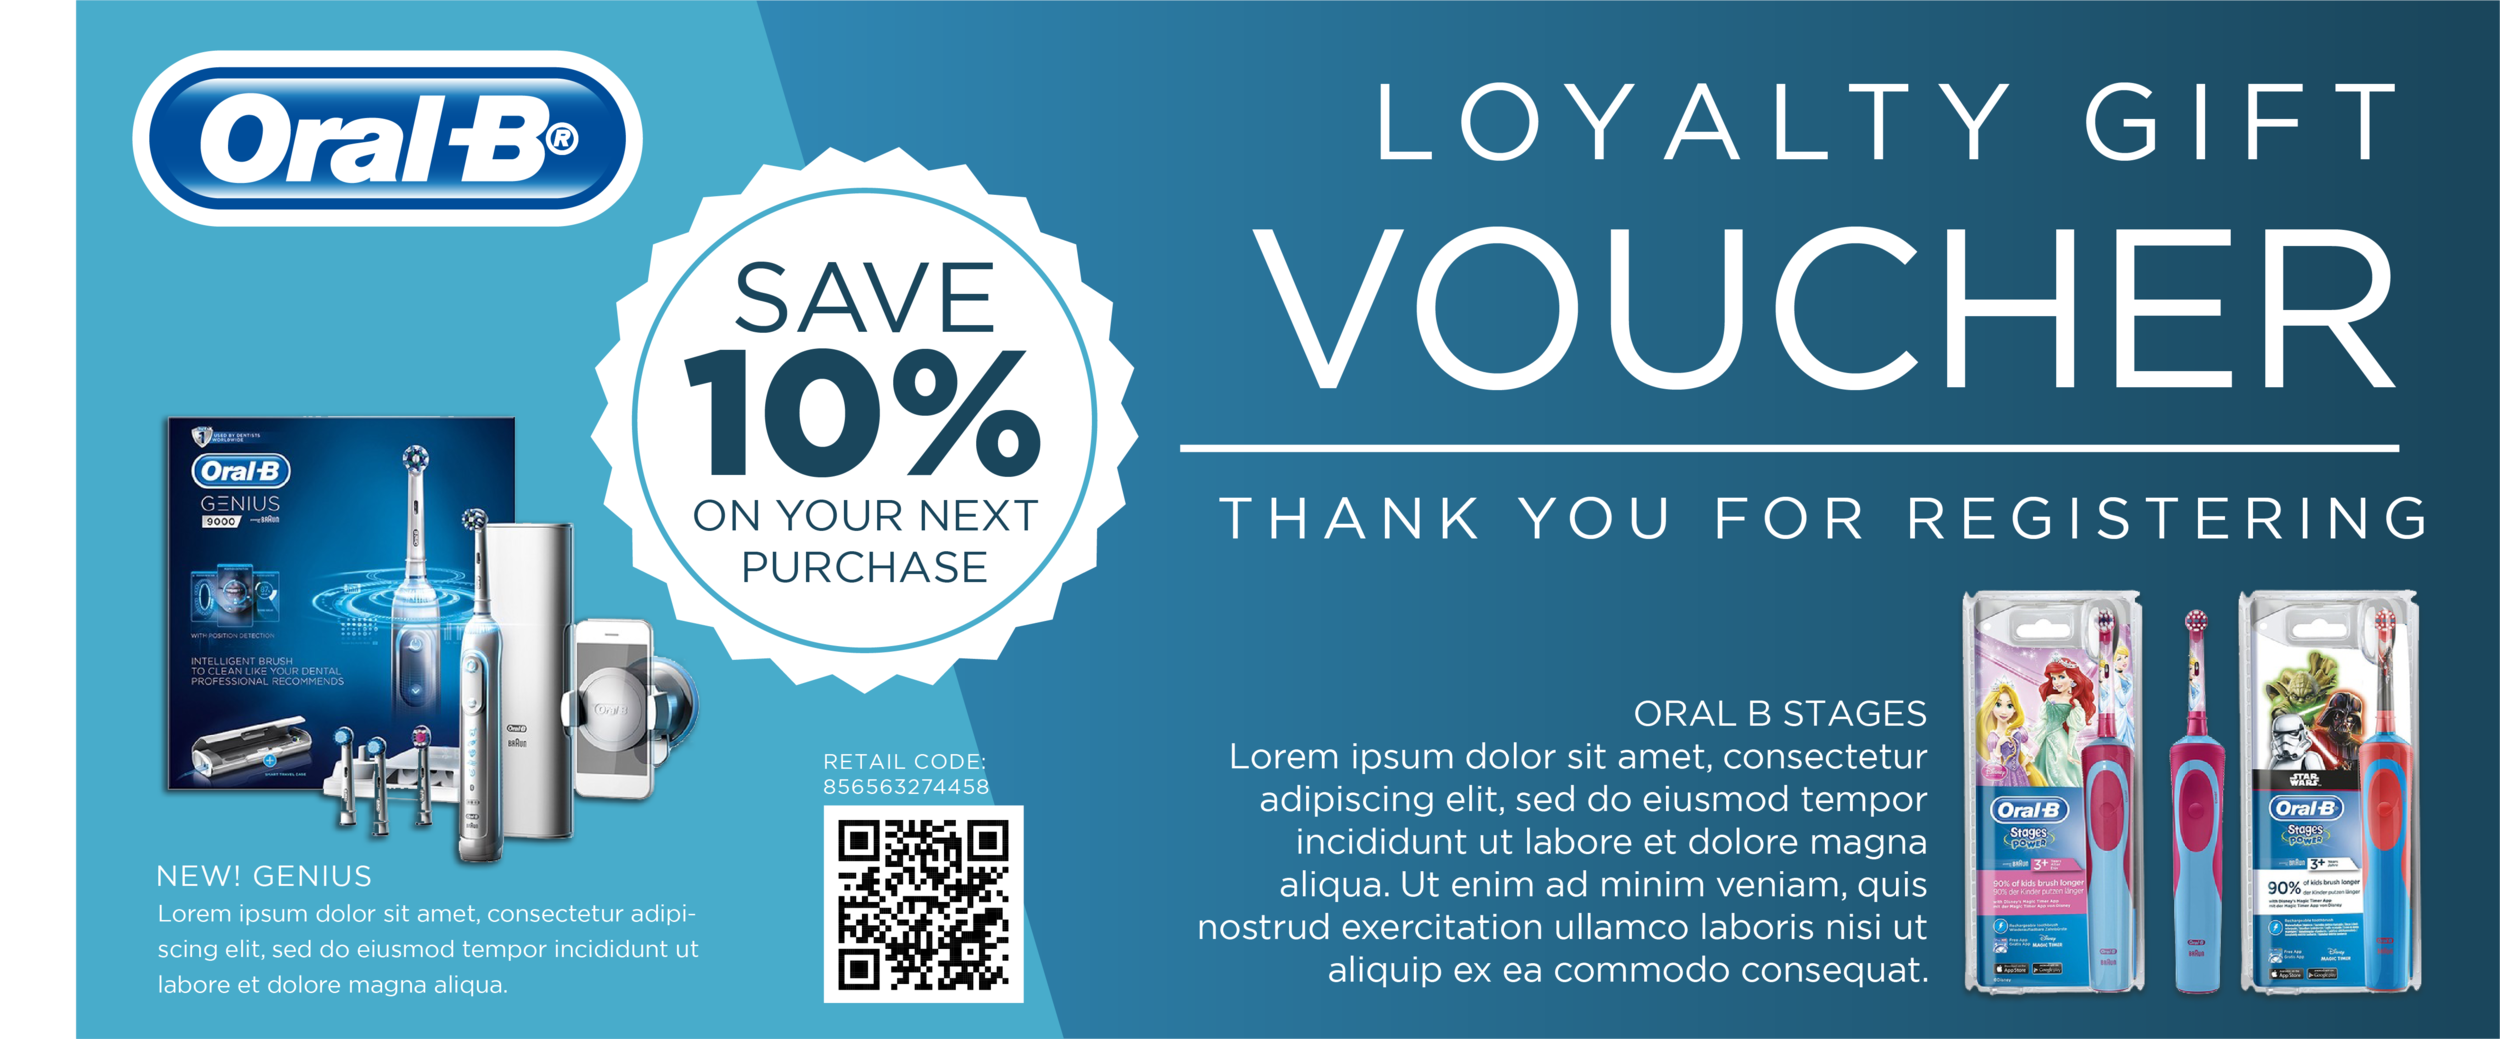 Thank you for registering your product, here's 10% off your next Oral B purchase! Print your voucher or save to your smartphone.